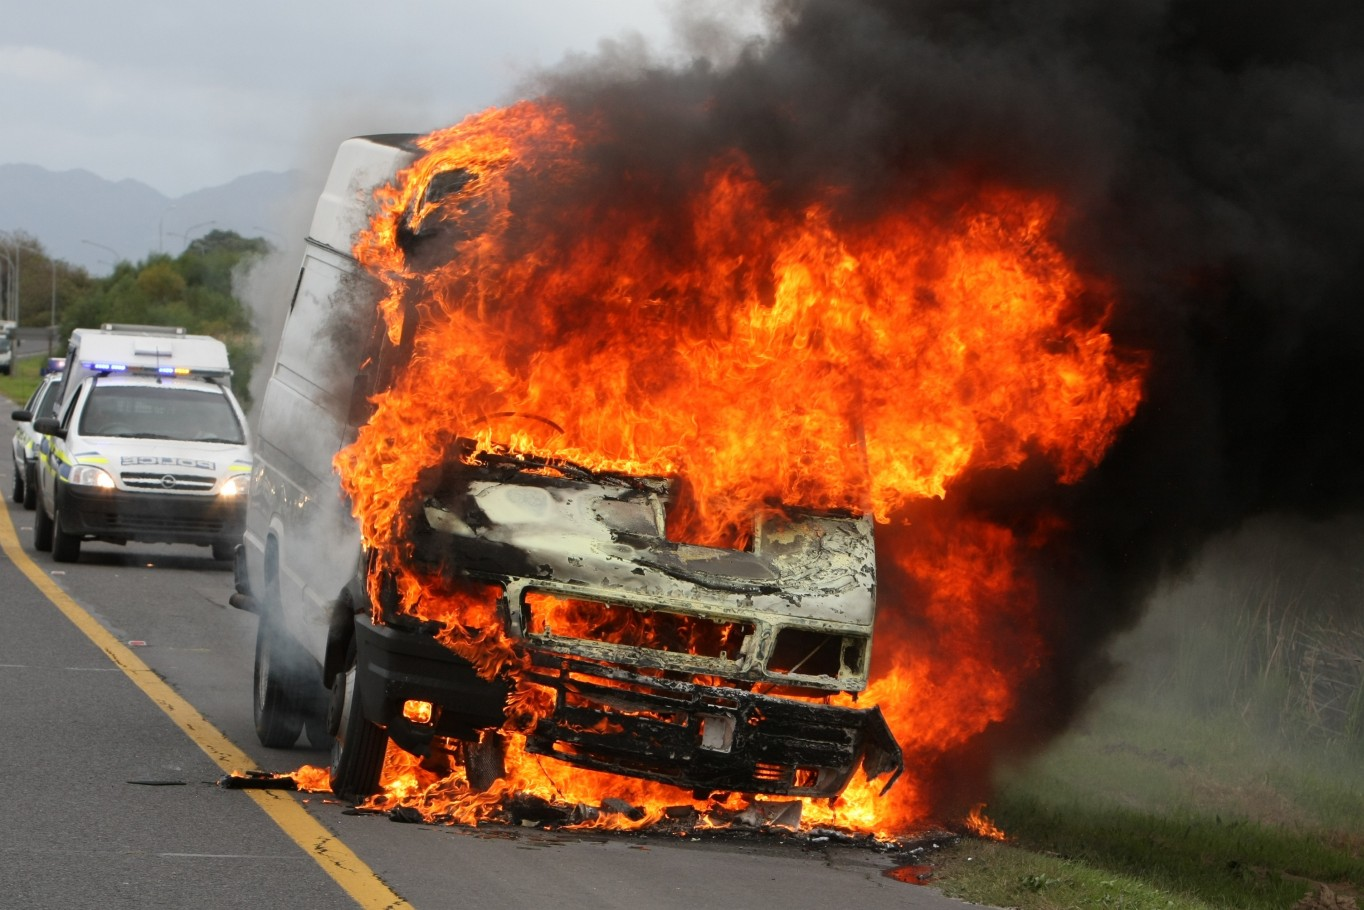 12392343 - delivery type vehicle on side of road burning with large flames and smoke and police cars in background